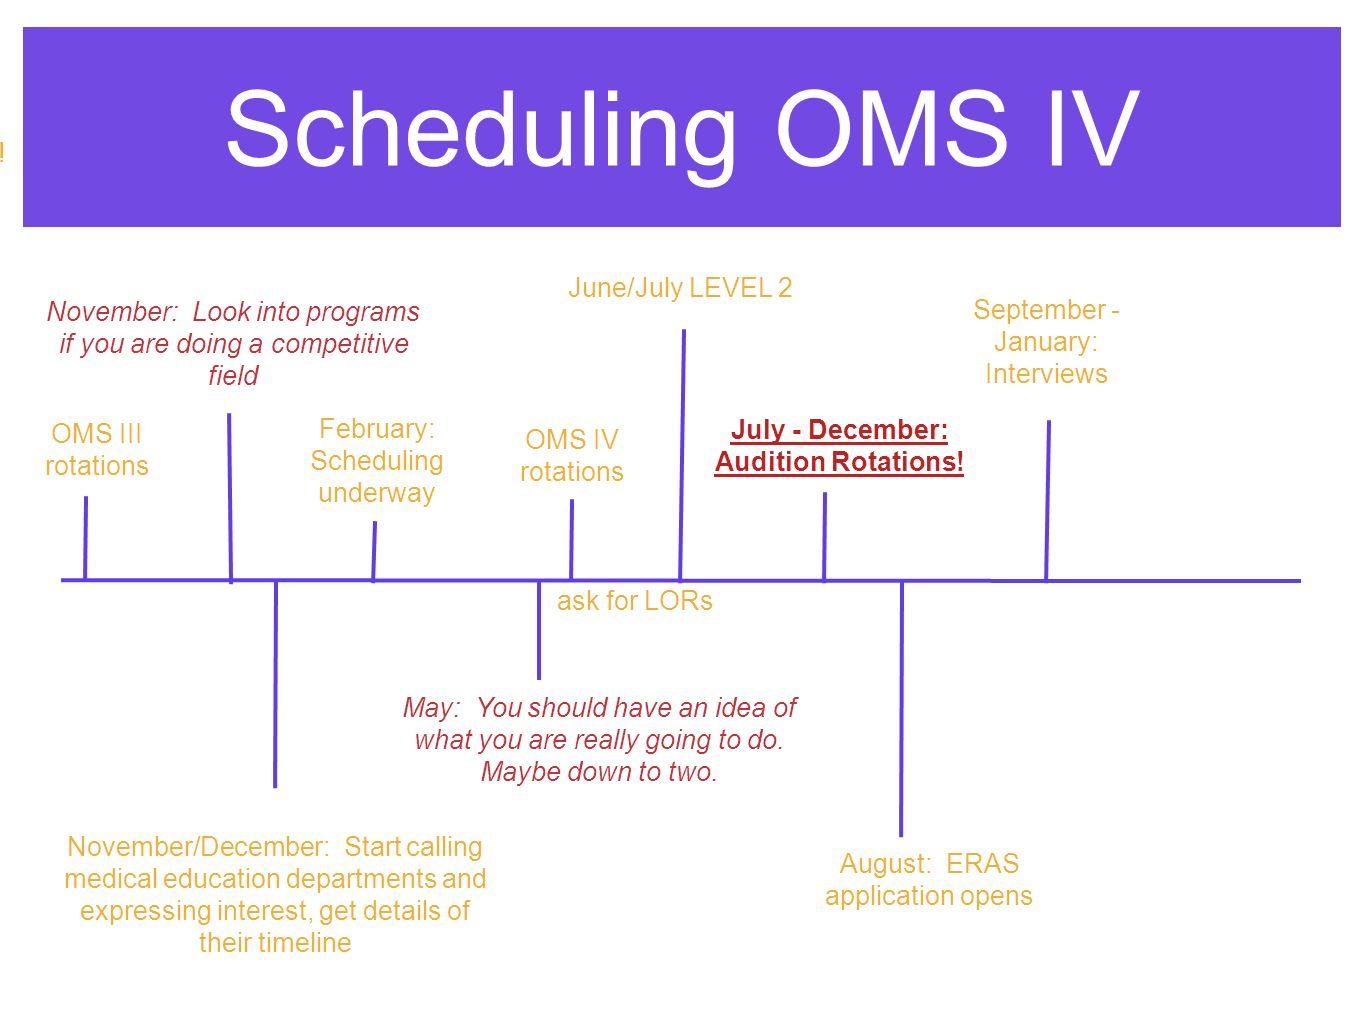 Scheduling OMS IV ask for LORs November: Look into programs if you are doing a competitive field September - January: Interviews OMS III rotations ROTATION.